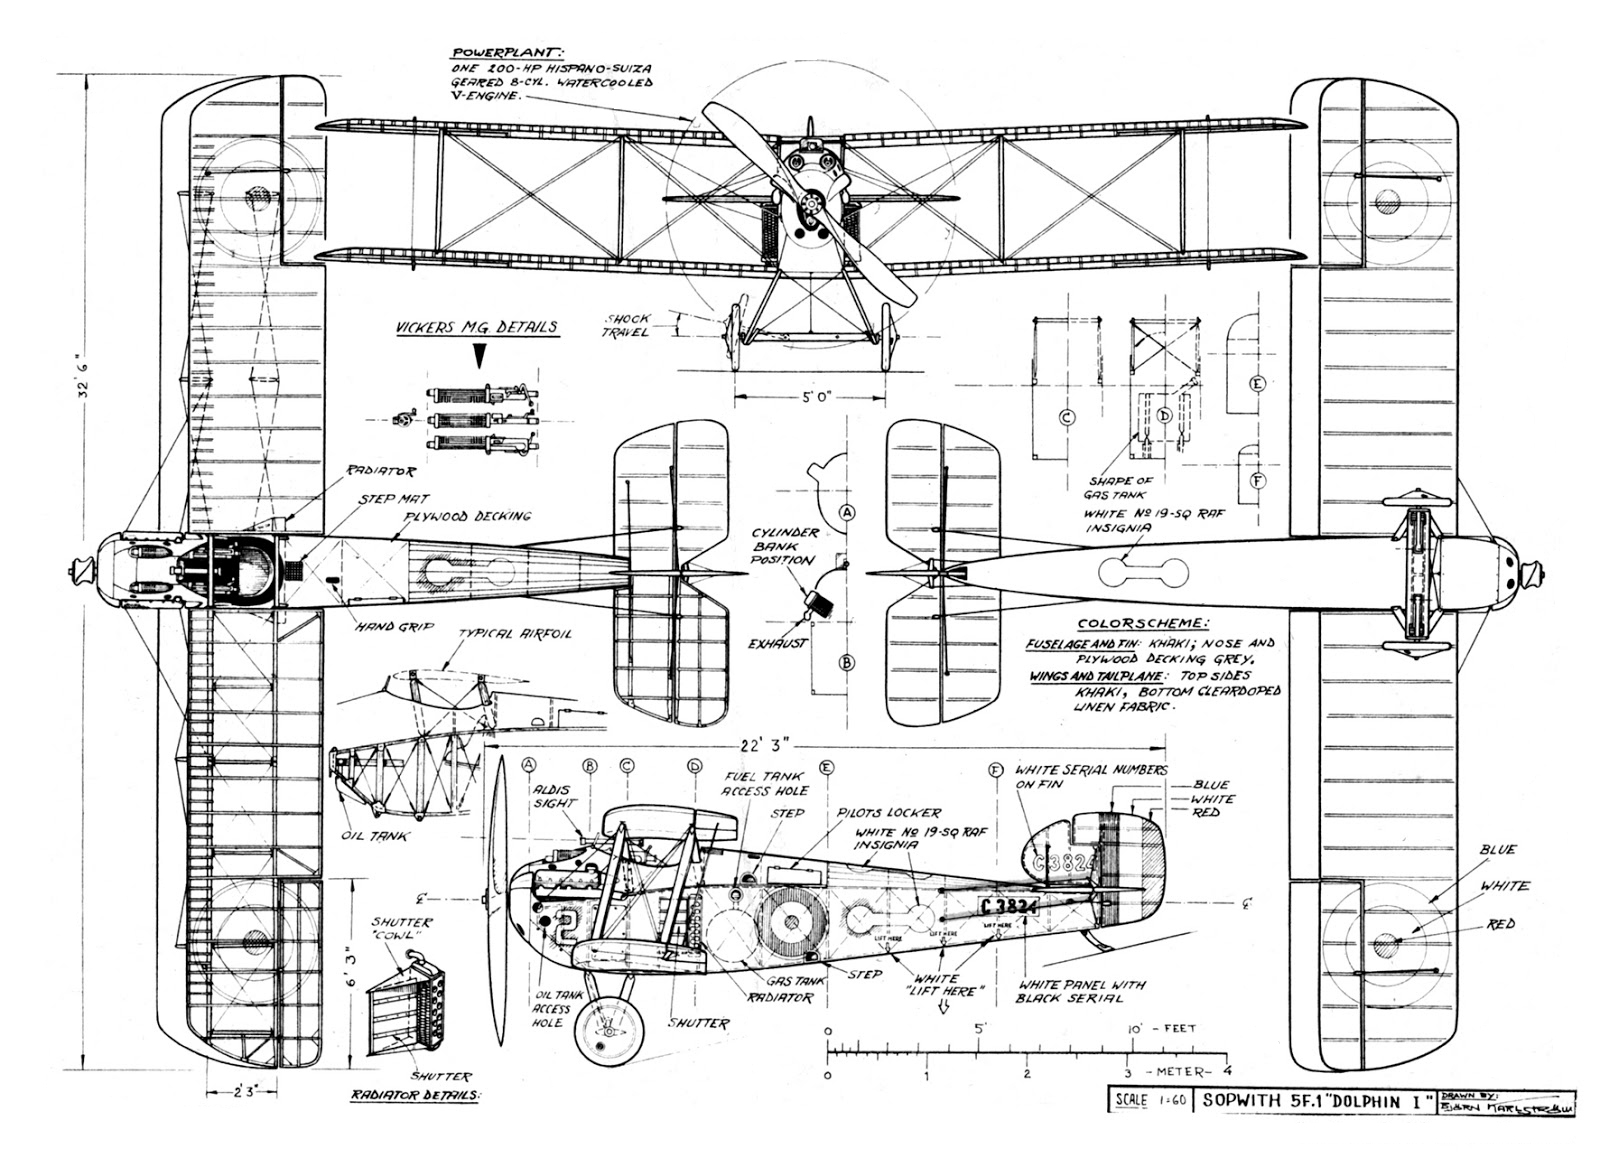 5F1 Dolphin blueprint